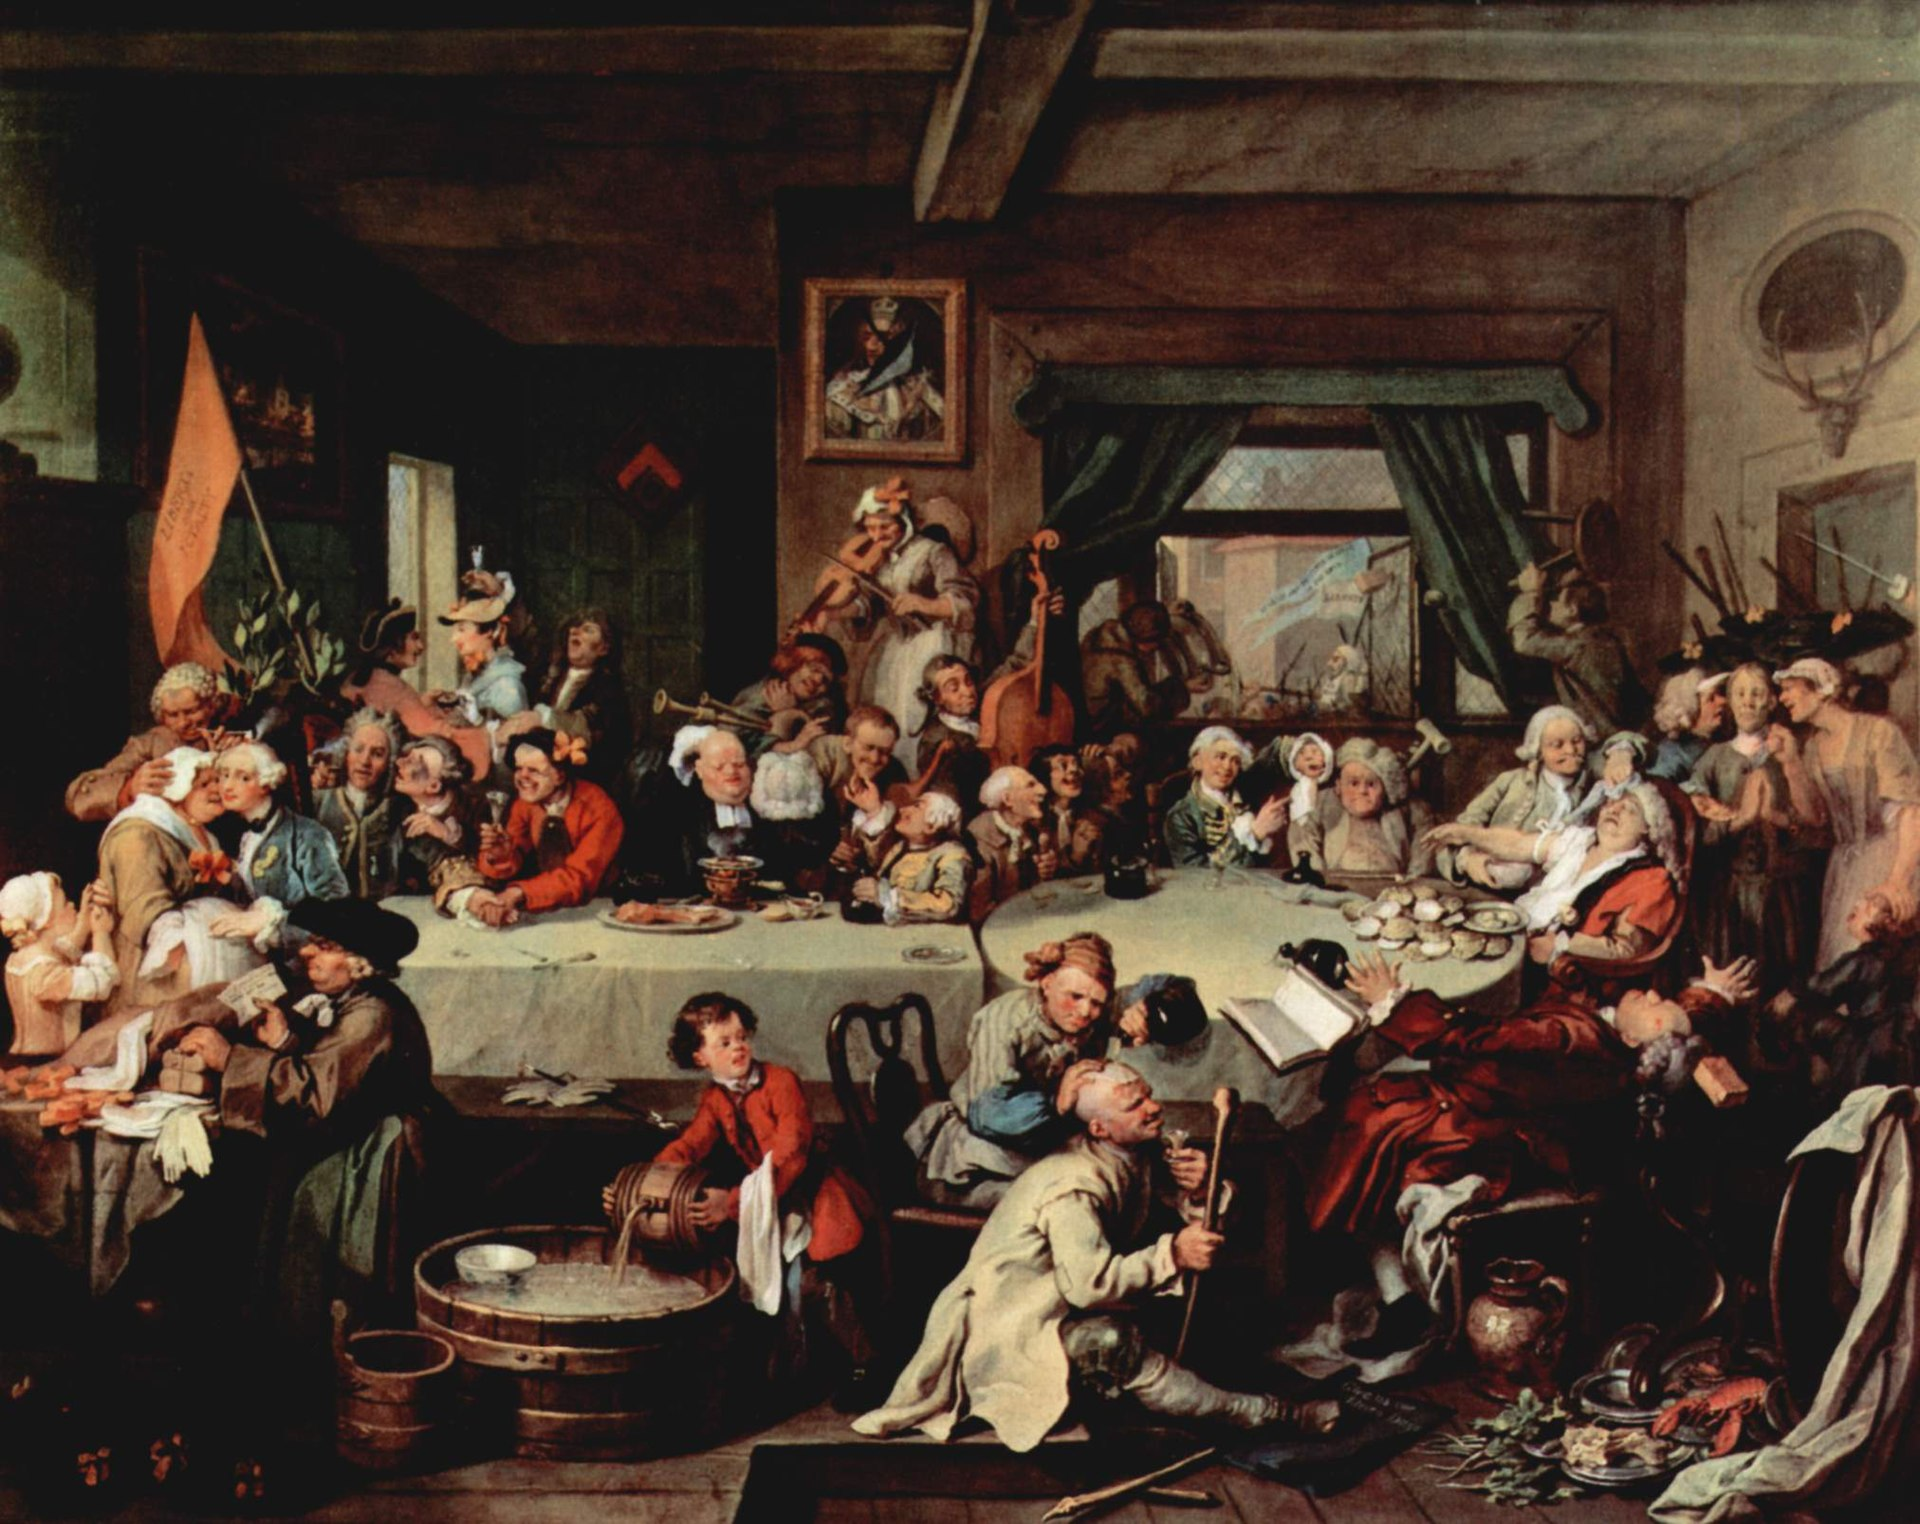 William Hogarth painting (c. 1755) which is the main source for